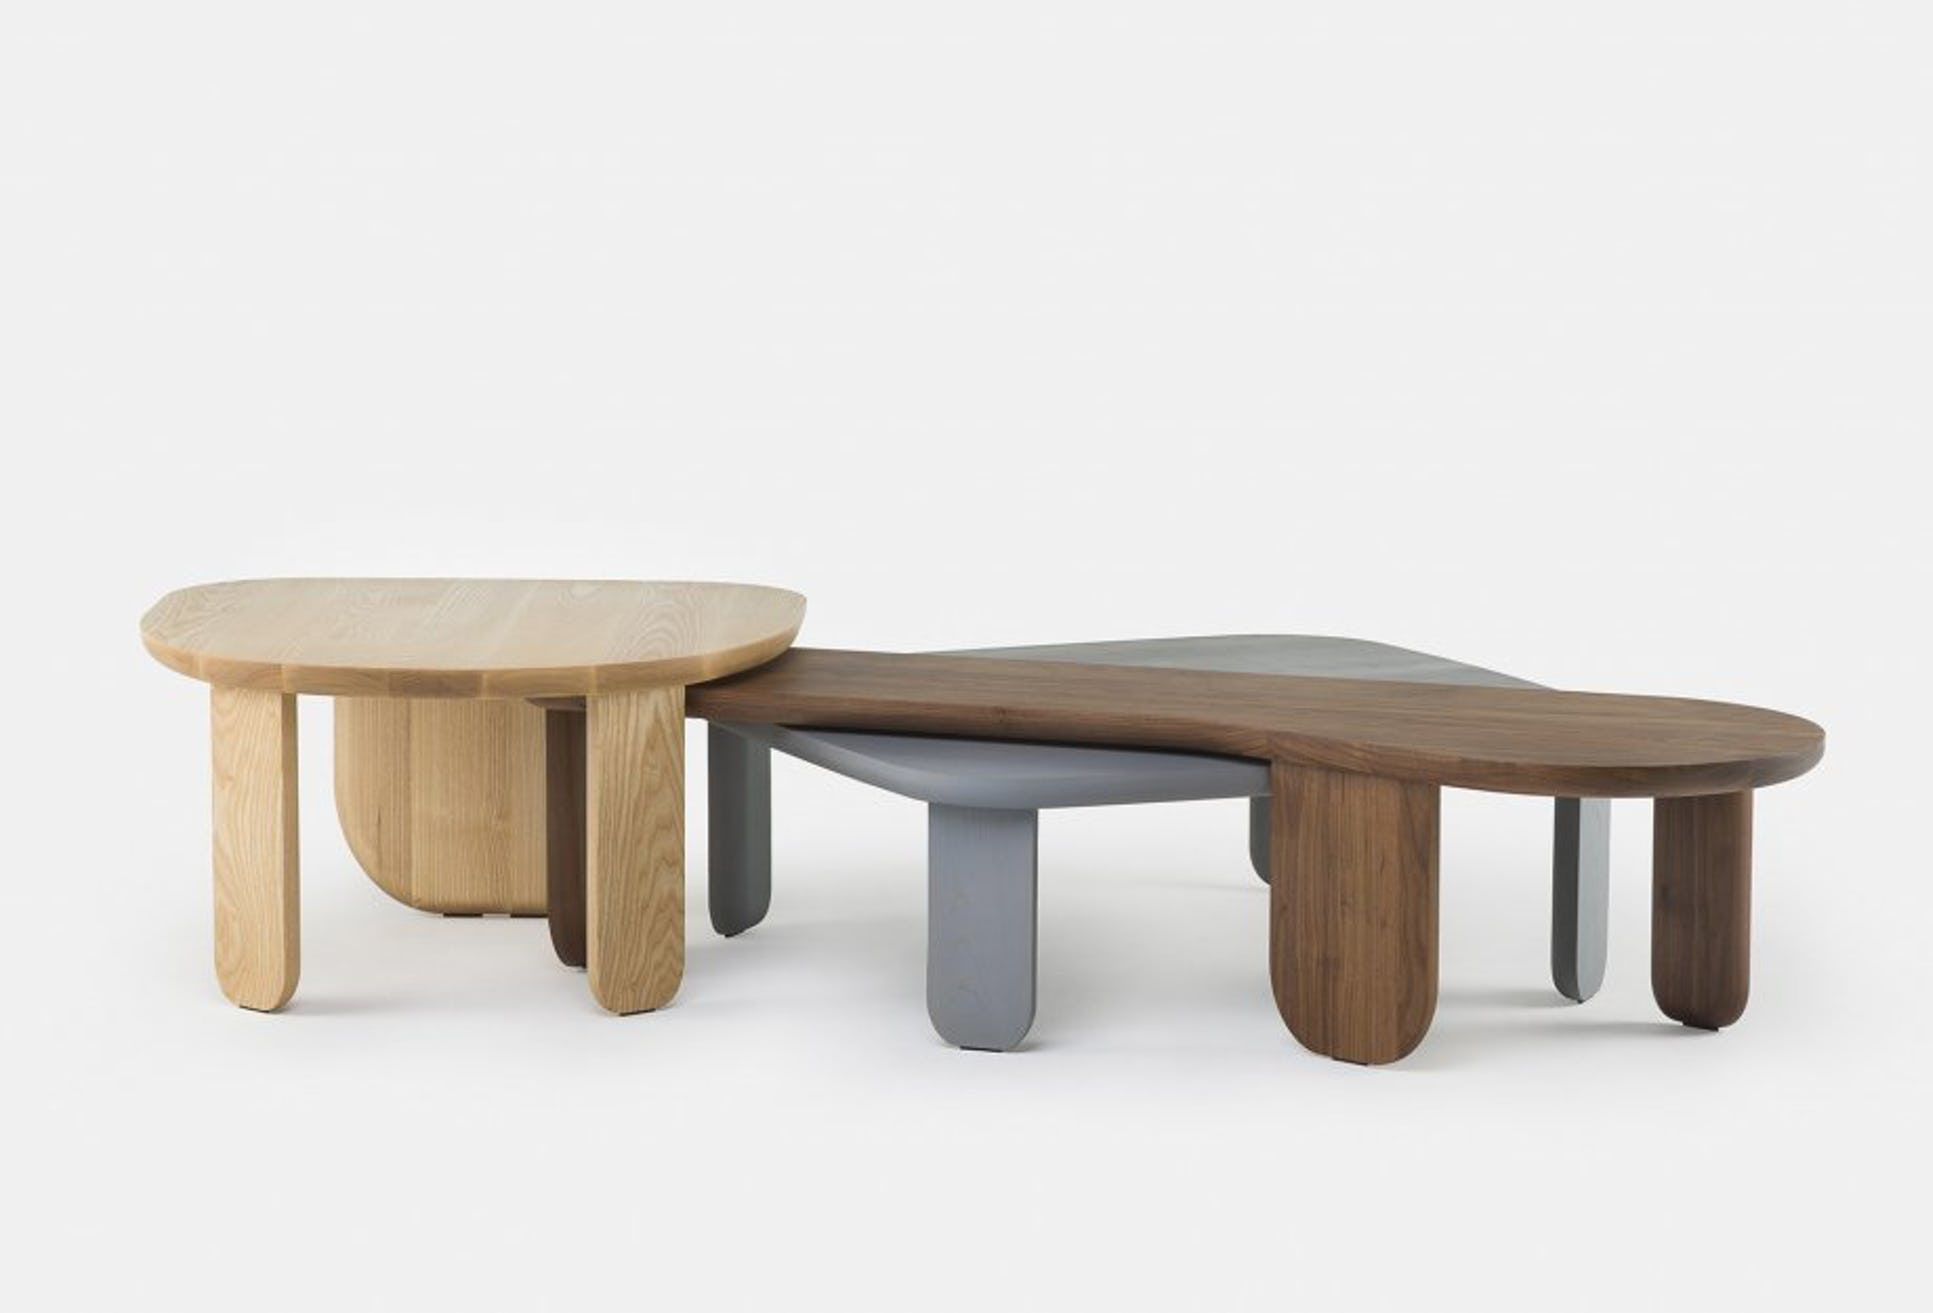 Kim Coffee Table Kim Bench Kim Side Table By De La Espada Now Available At Haute Living Coffee Table Nesting Tables Table